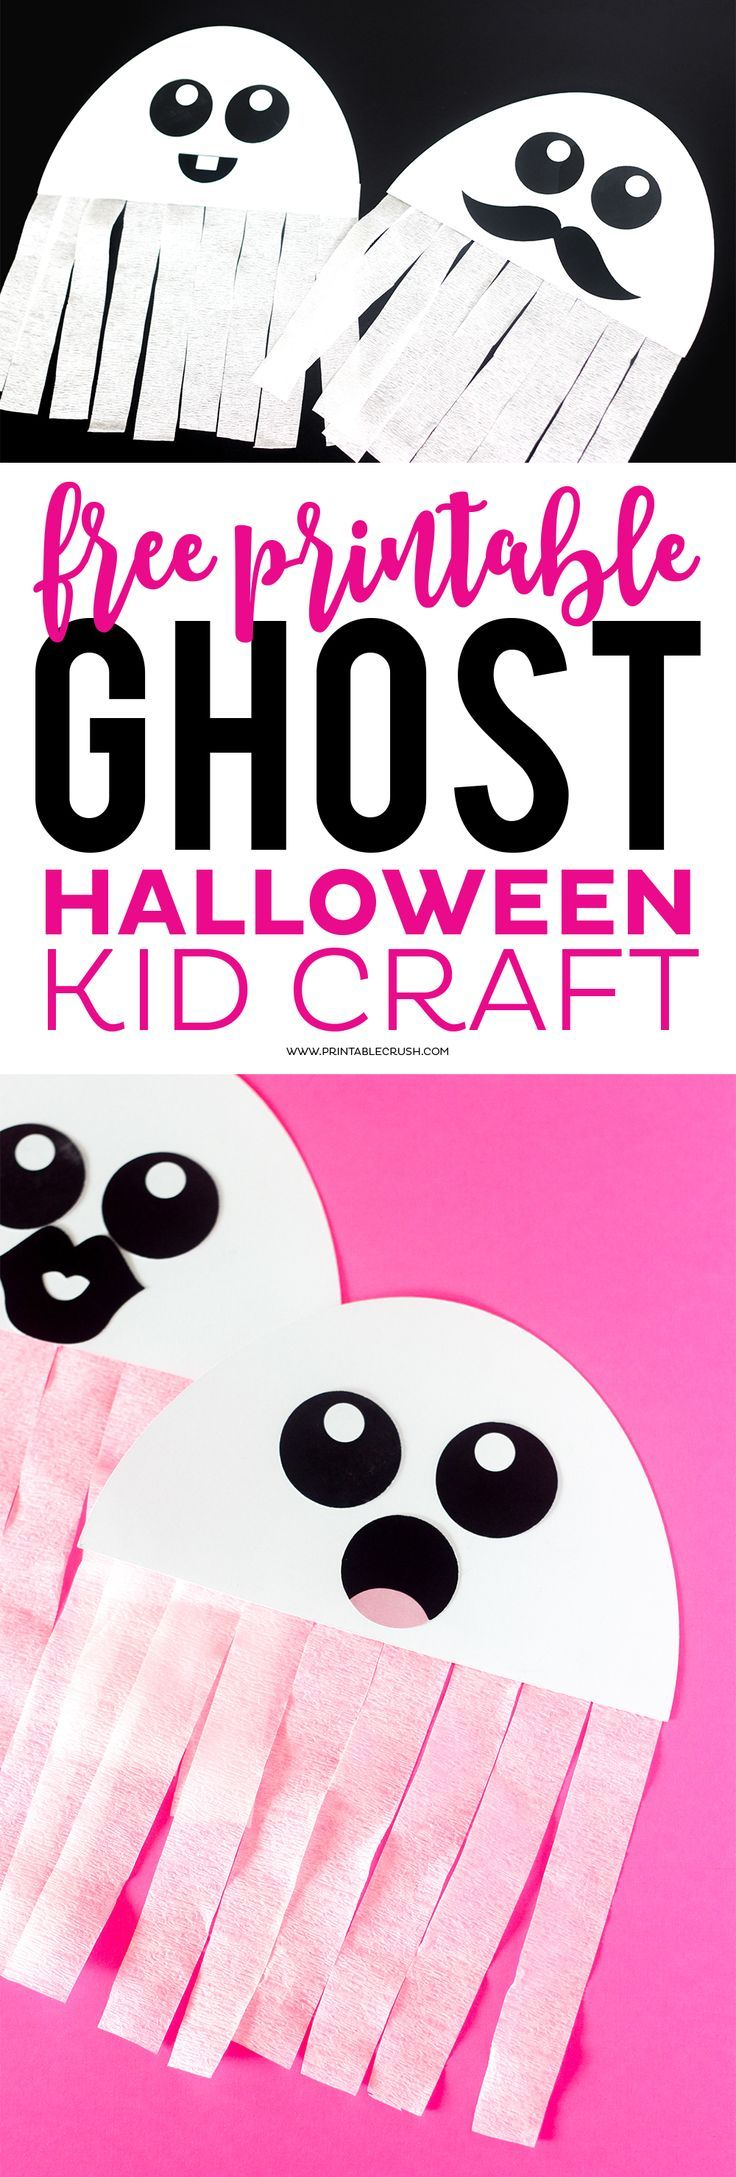 picture relating to Free Printable Halloween Crafts called This Cost-free Printable Ghost Halloween Craft would be a Good